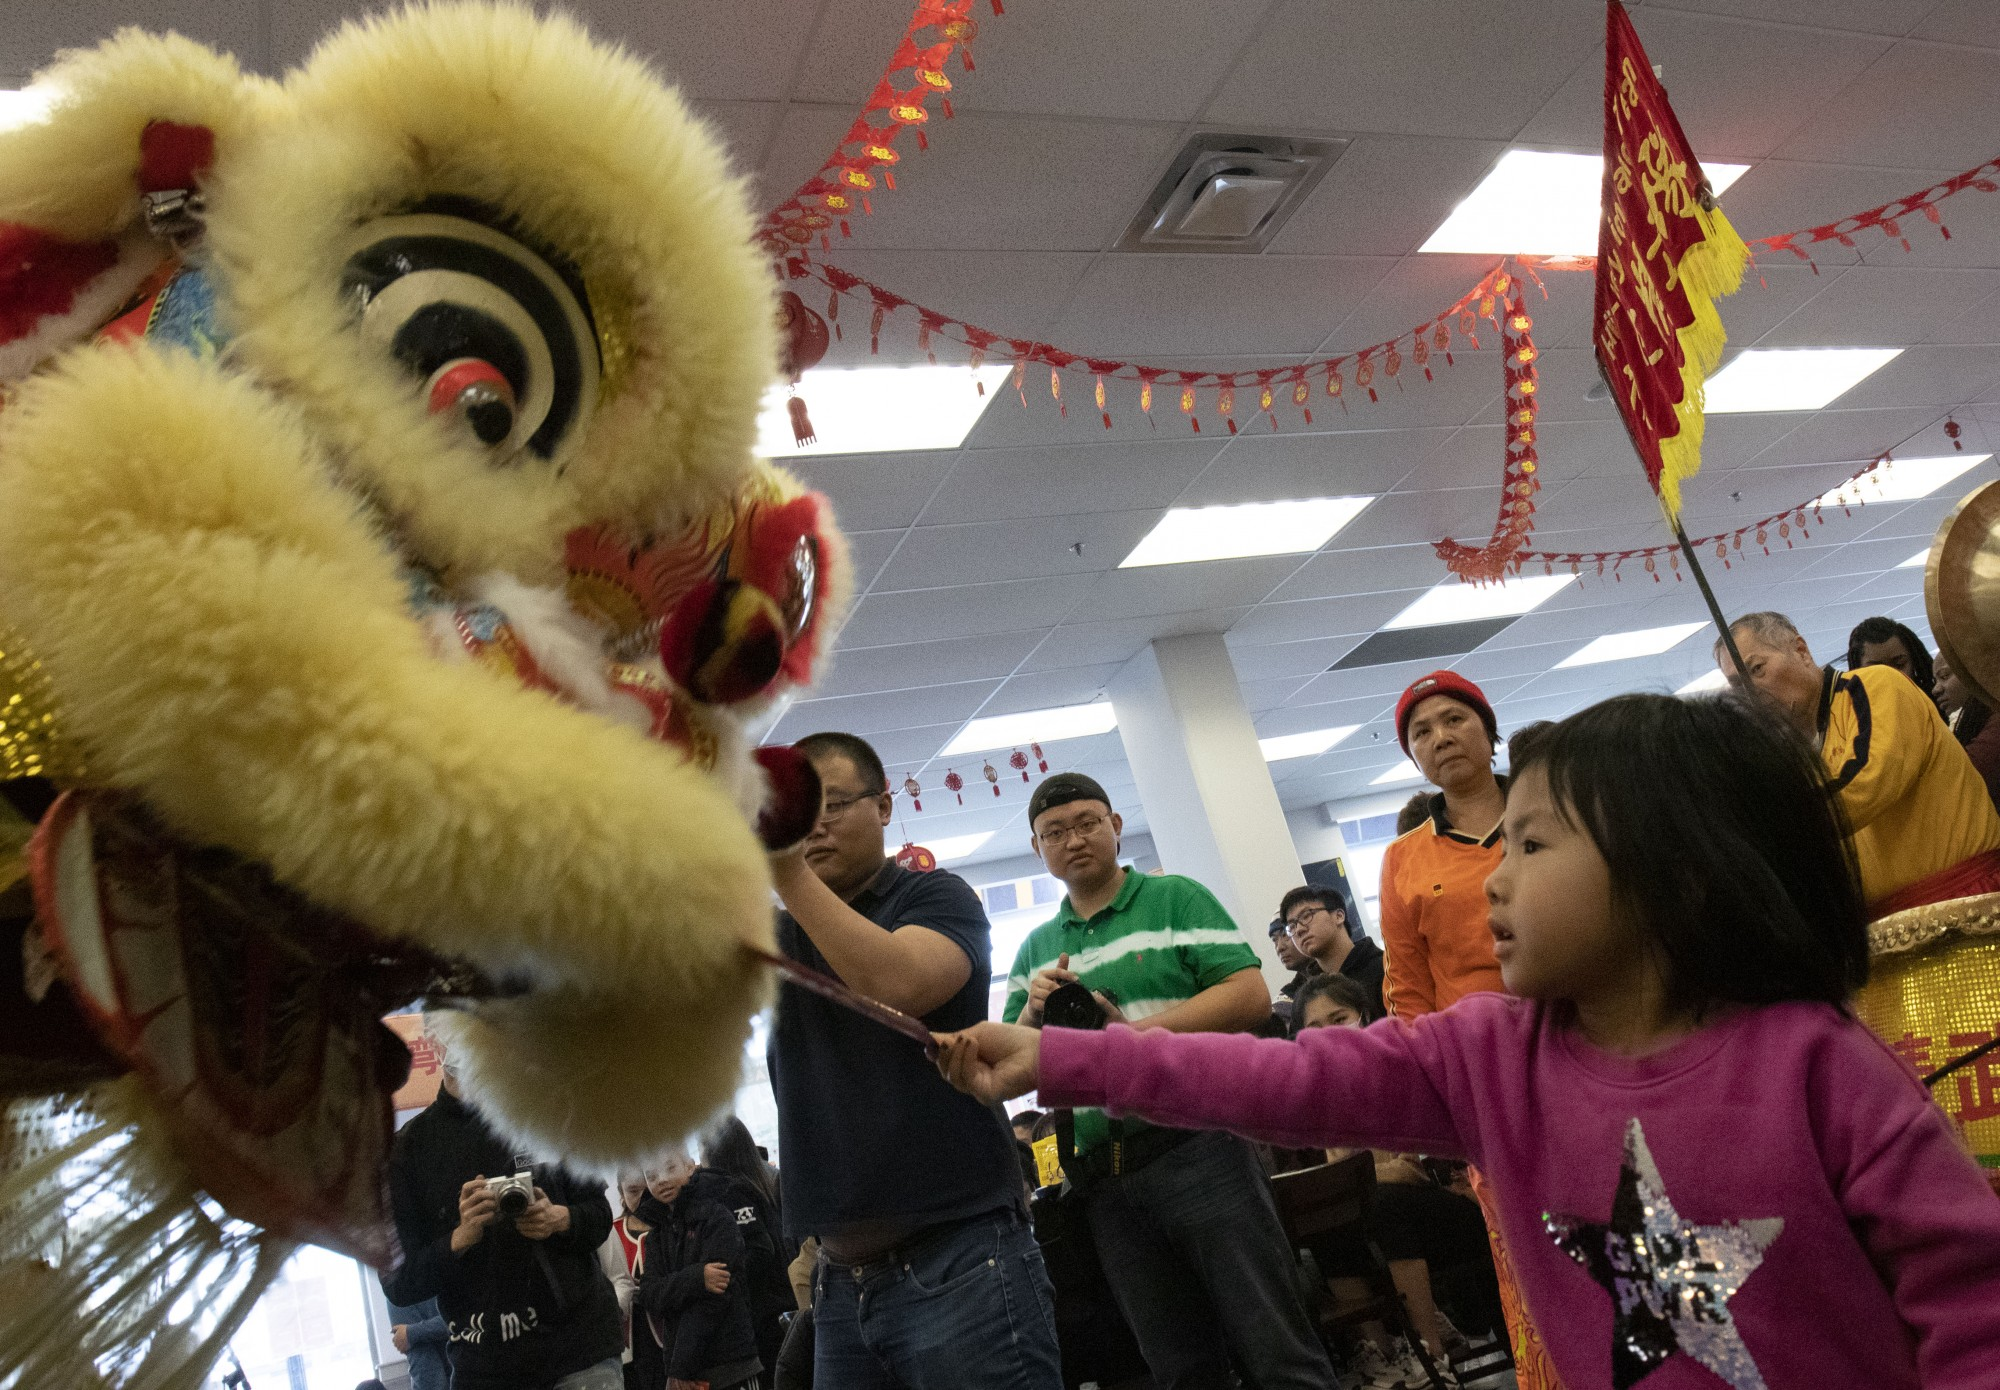 """Monica Tran """"feeds"""" the lion during the Lion Dance performed by Hu's Lucky Lion Dance Team while attending the Lunar New Year celebration at University Food Hall with her father Vu Tran on Sunday, Jan. 26. """"Feeding"""" the lion, either with friuts or with rewards for the lion troupe, is a tradition to bring prosperity and good luck in the coming year."""